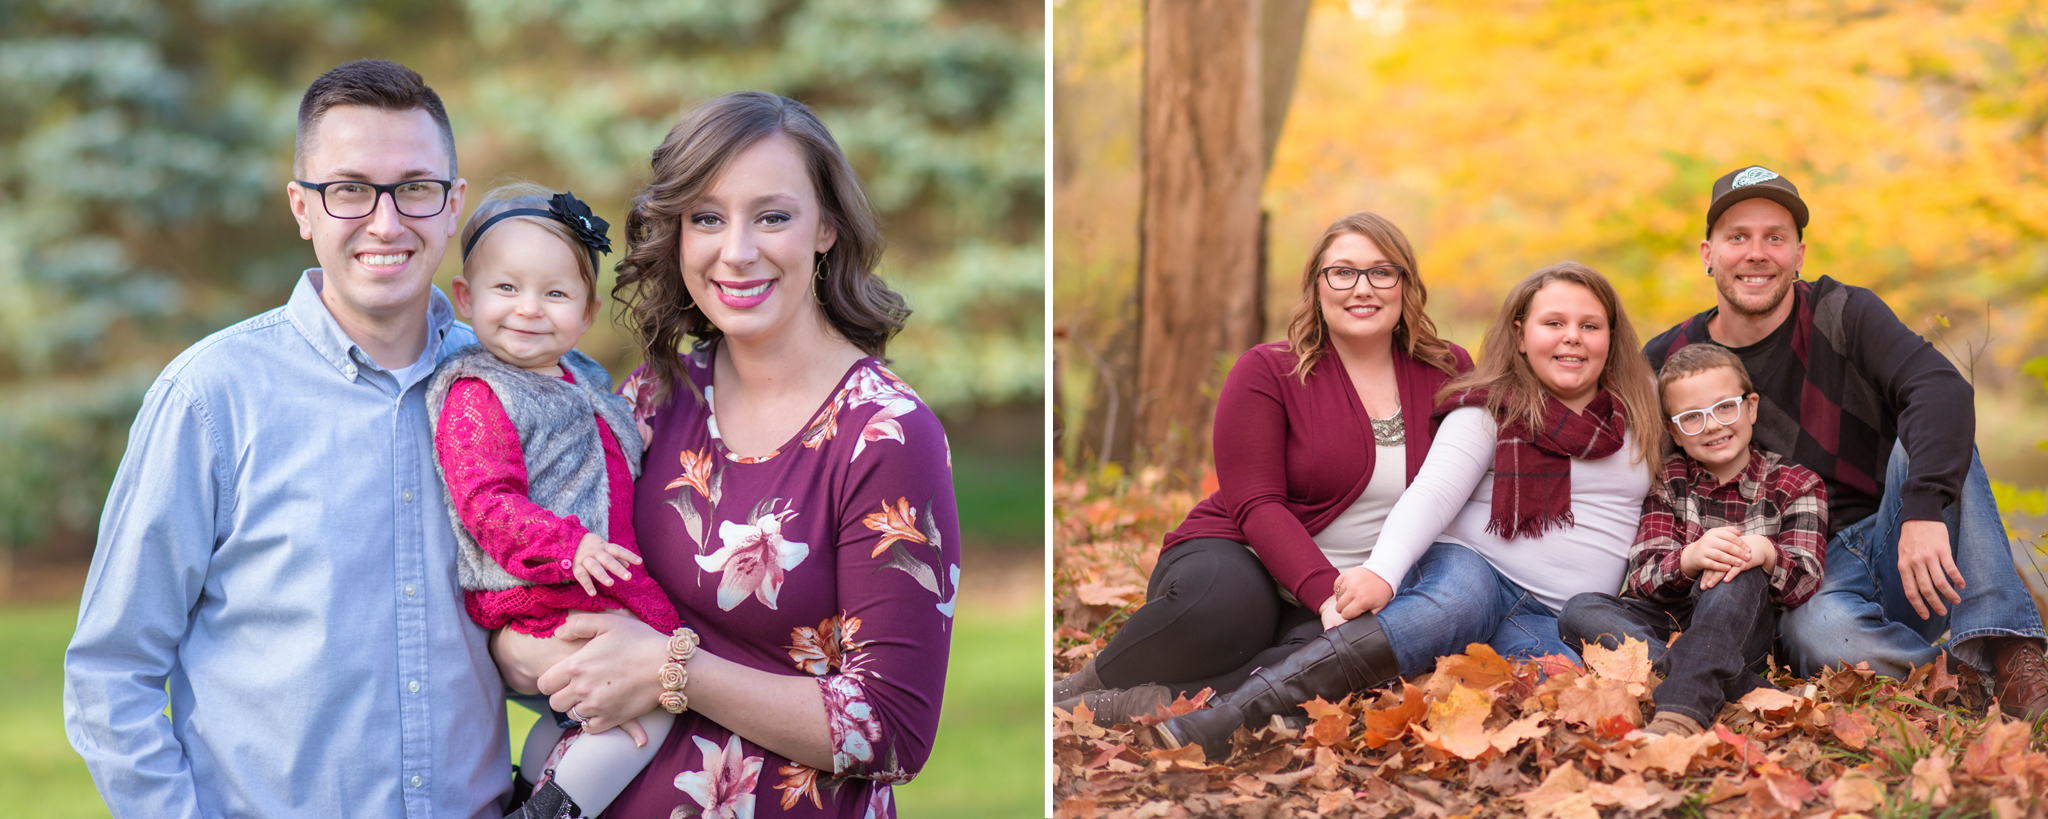 outdoor fall family photo session